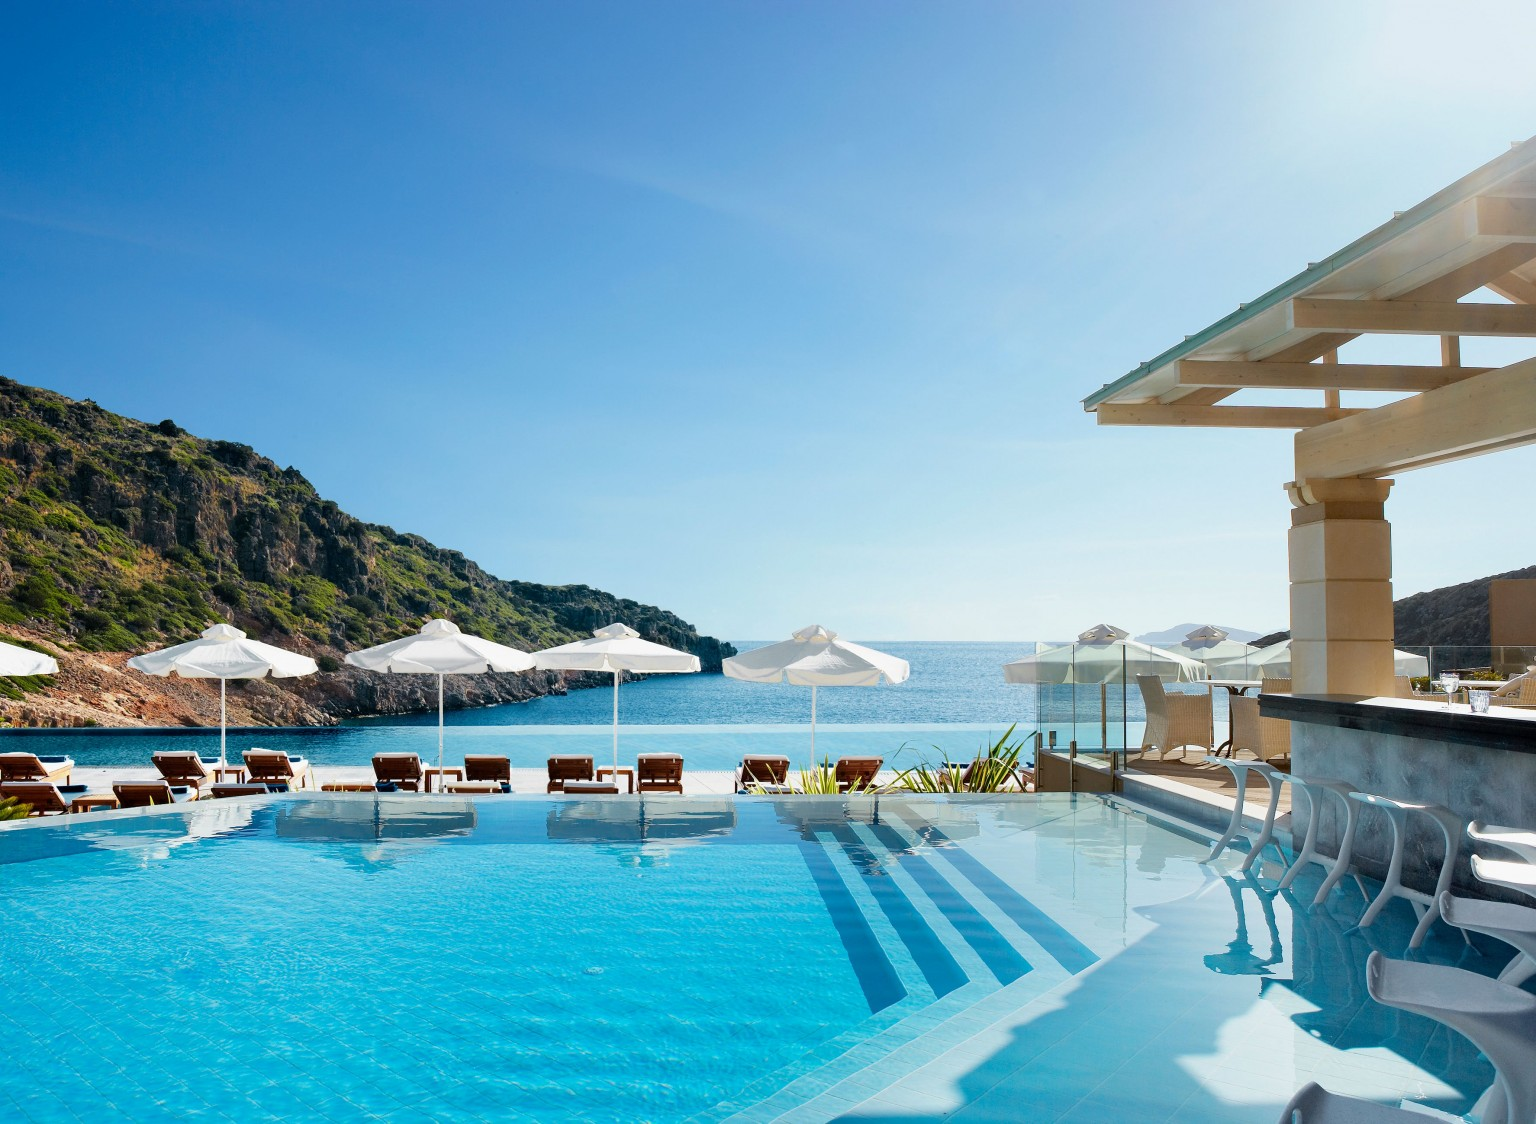 Fantastic Luxury Family Hotels For Child Friendly Holidays Smith Download Free Architecture Designs Scobabritishbridgeorg